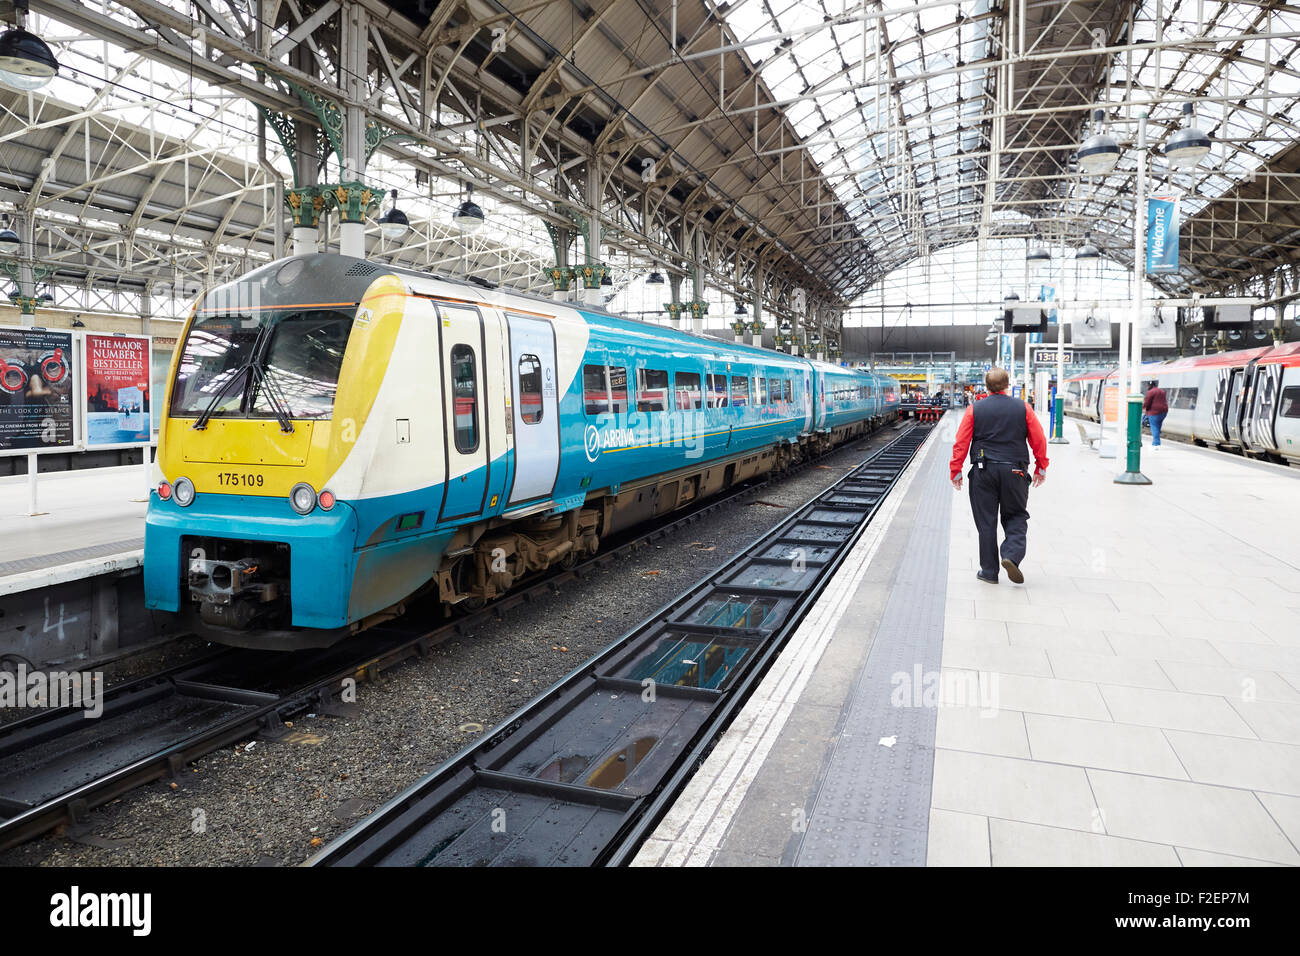 Manchester Piccadilly railway station an Arriva Trains Wales at the platform Arriva Wales is a British train operating - Stock Image